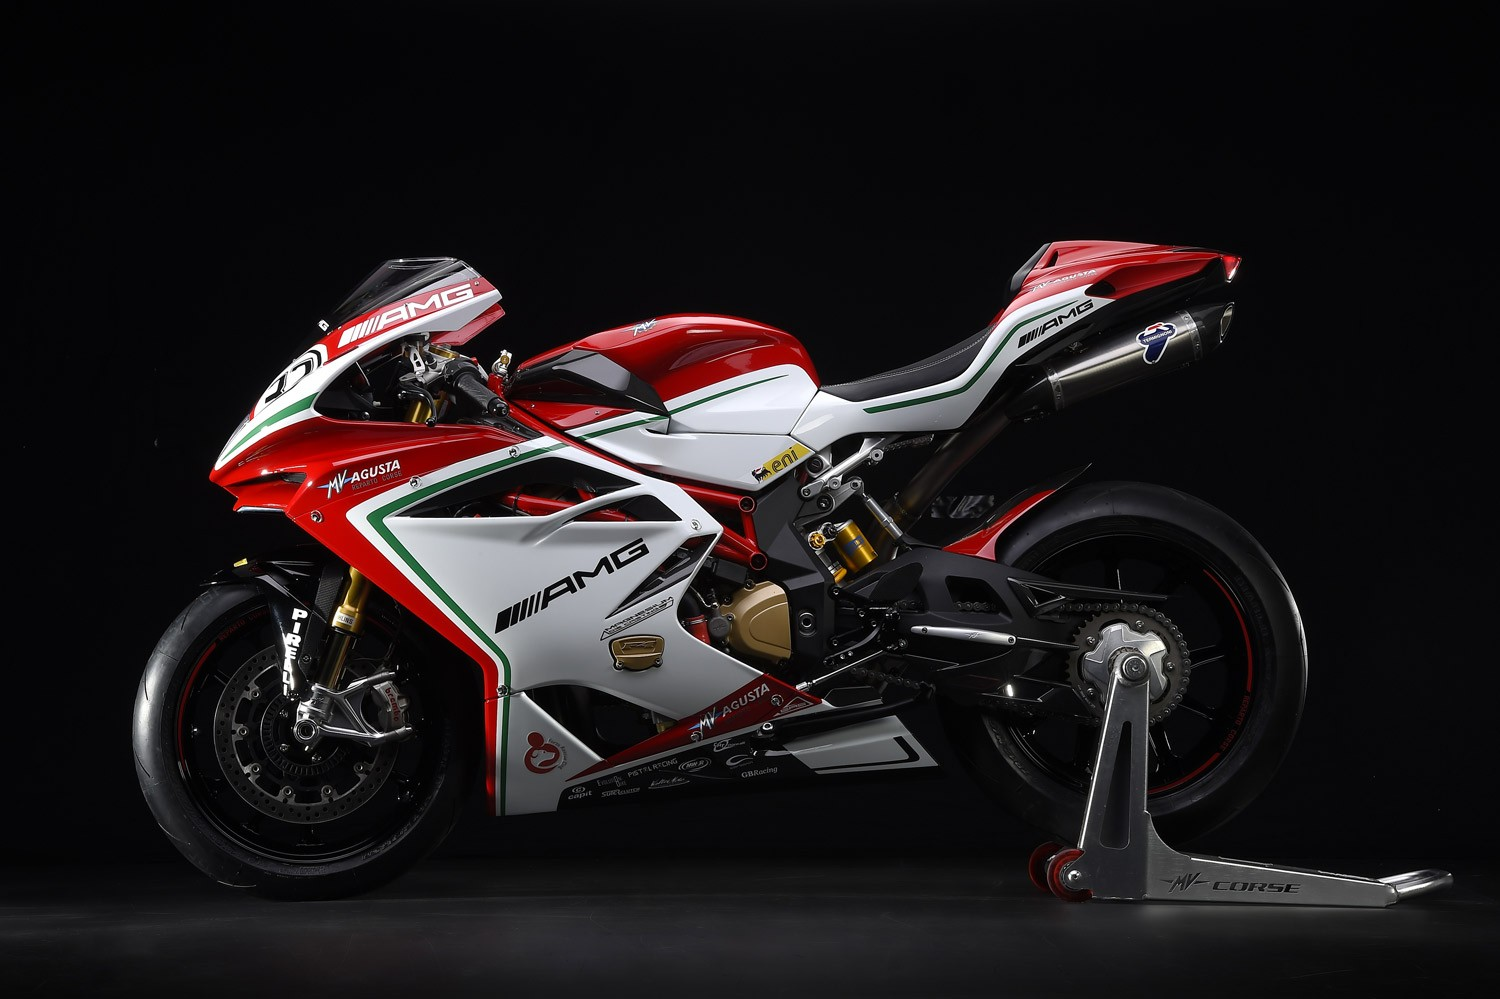 mv agusta rumored to work on all new in line 4 bike generation no more new triples autoevolution. Black Bedroom Furniture Sets. Home Design Ideas